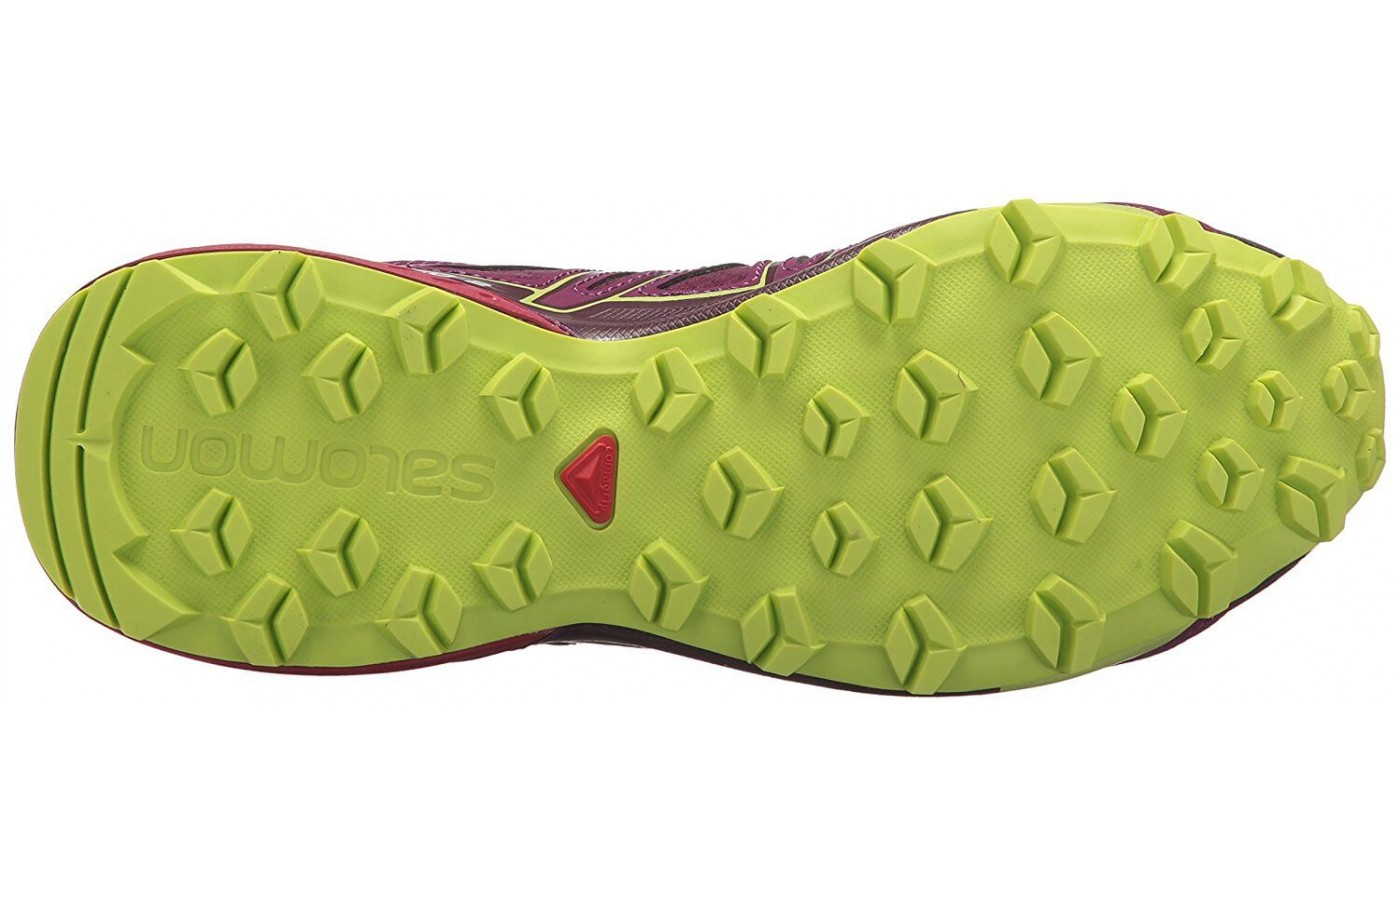 The Salomon Speedcross Vario 2 features a Contagrip outsole